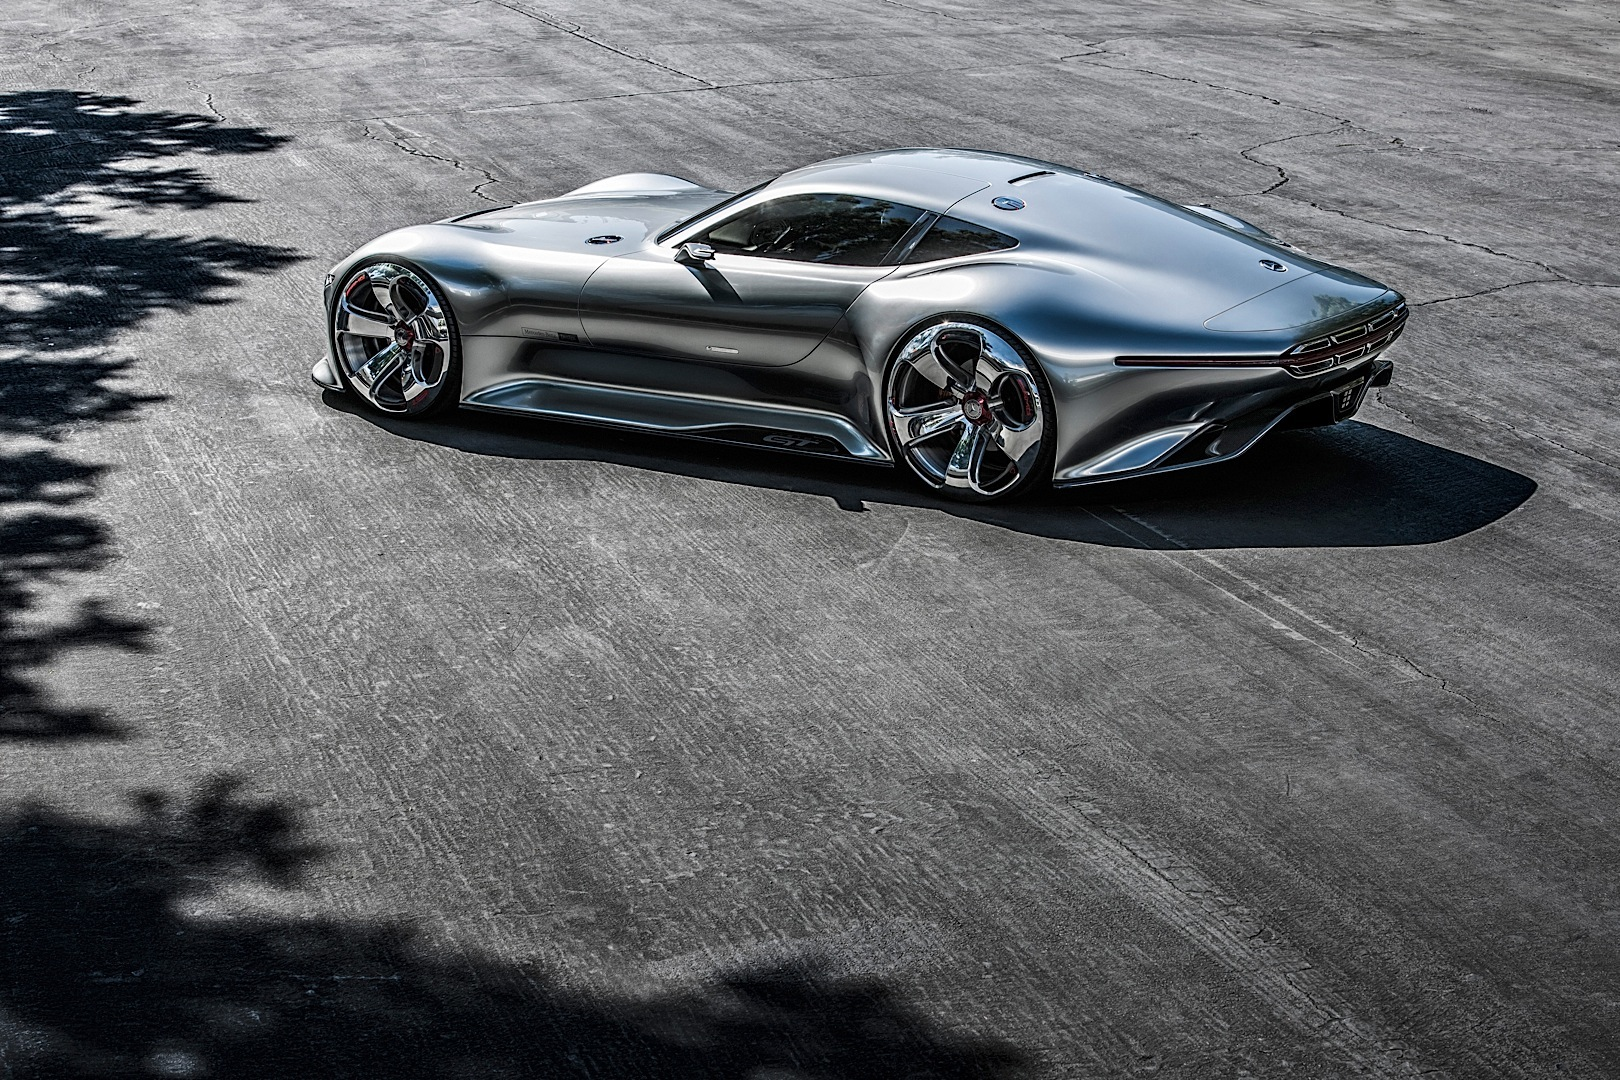 Mercedes benz design manager gives interview about amg for Mercedes benz amg vision